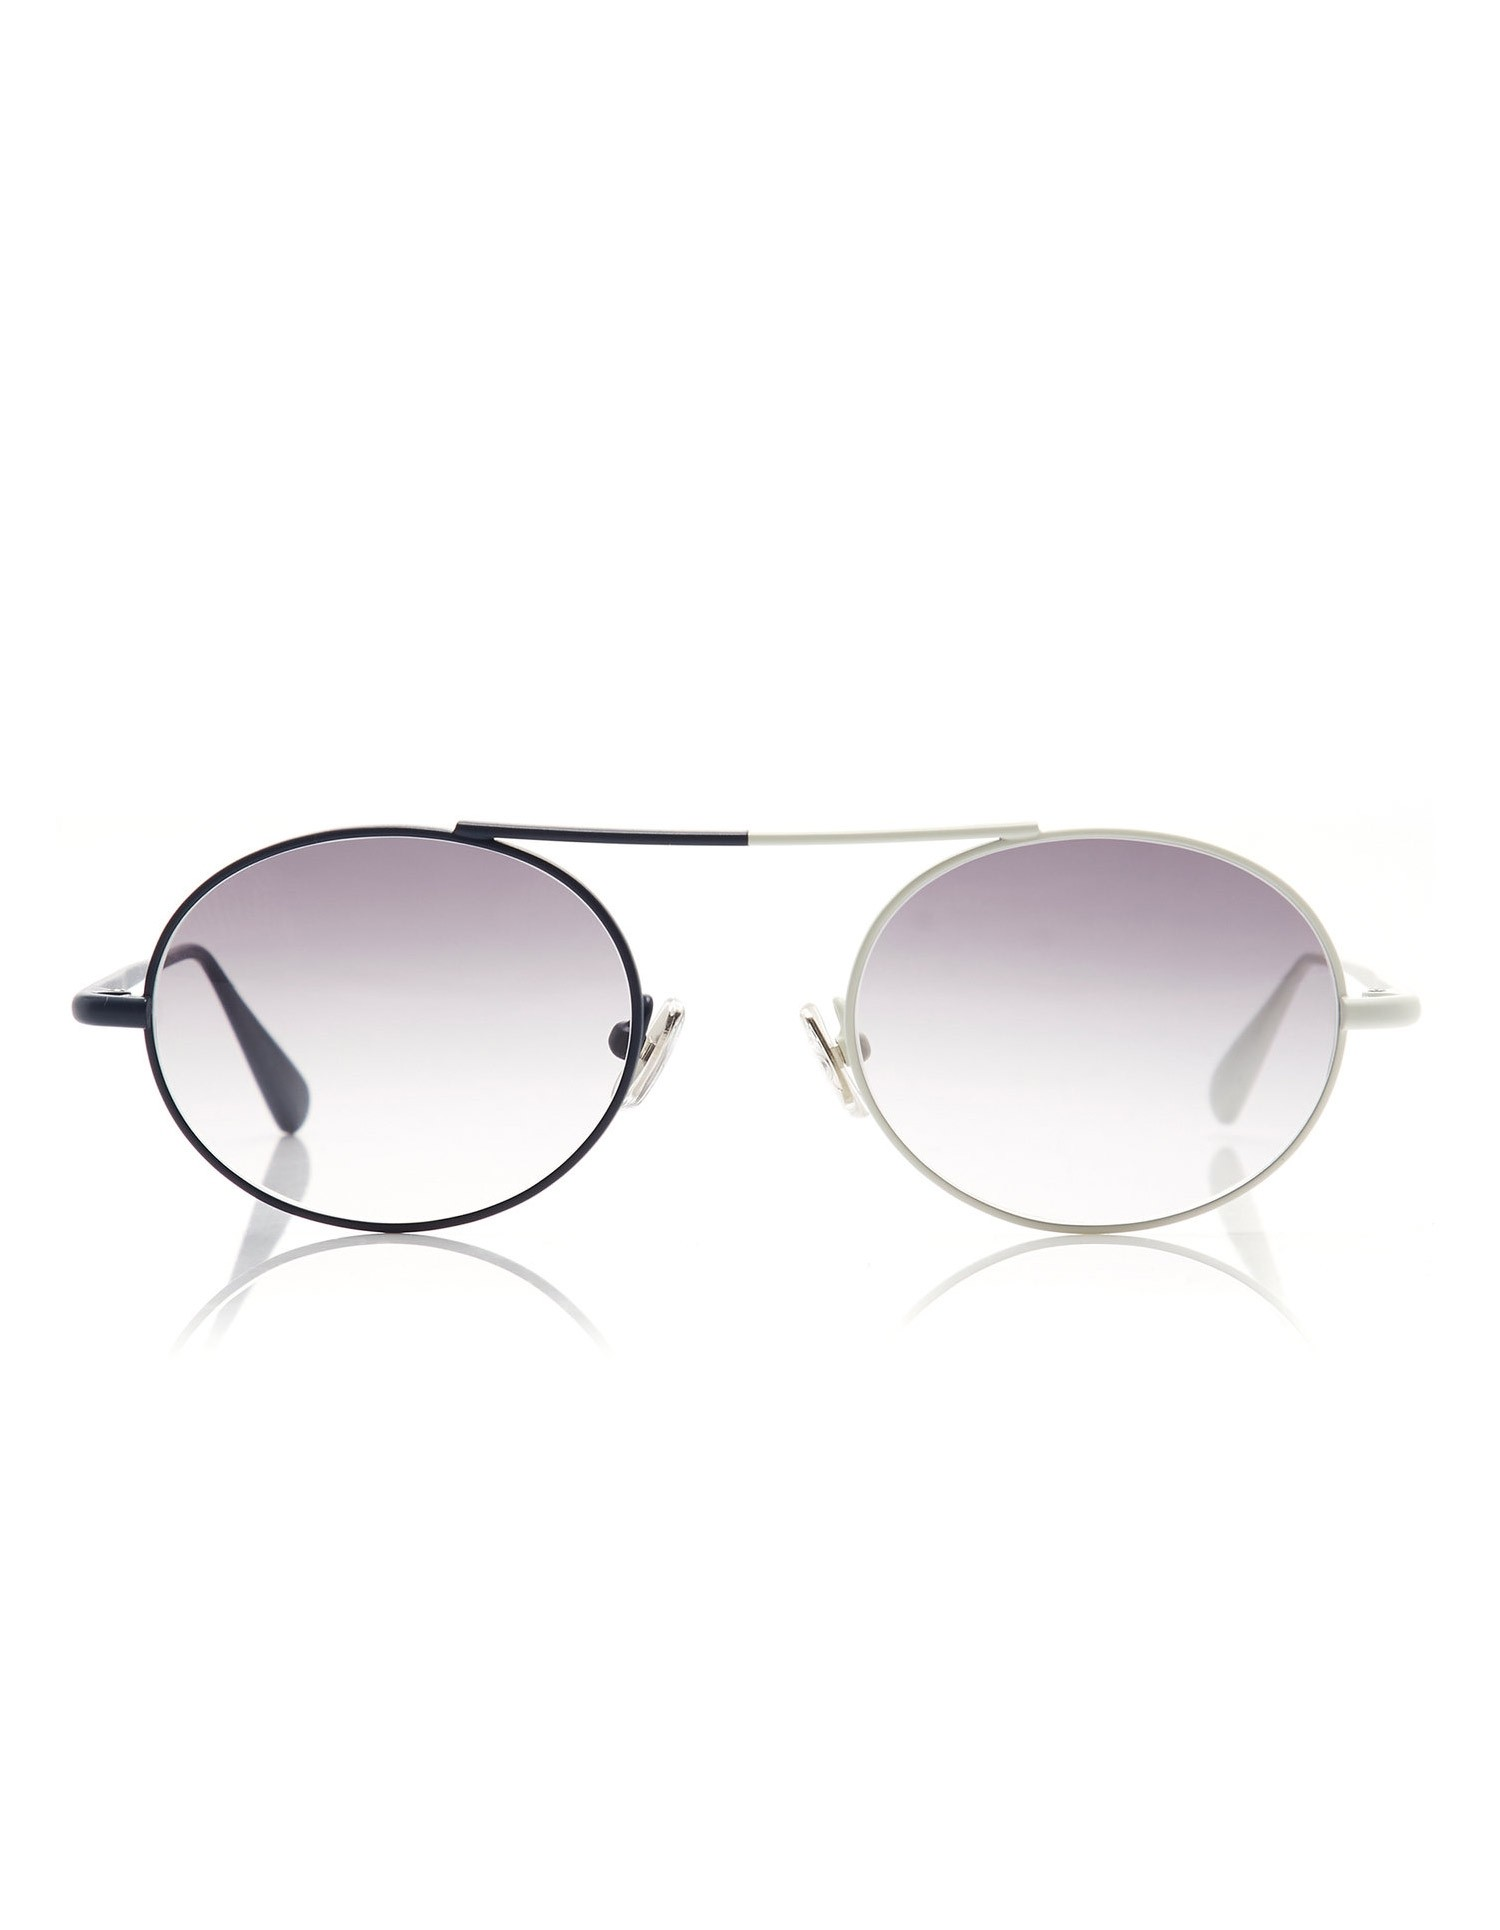 Monse Nina Sunglasses with Dual Colored Rims in Navy and Ivory